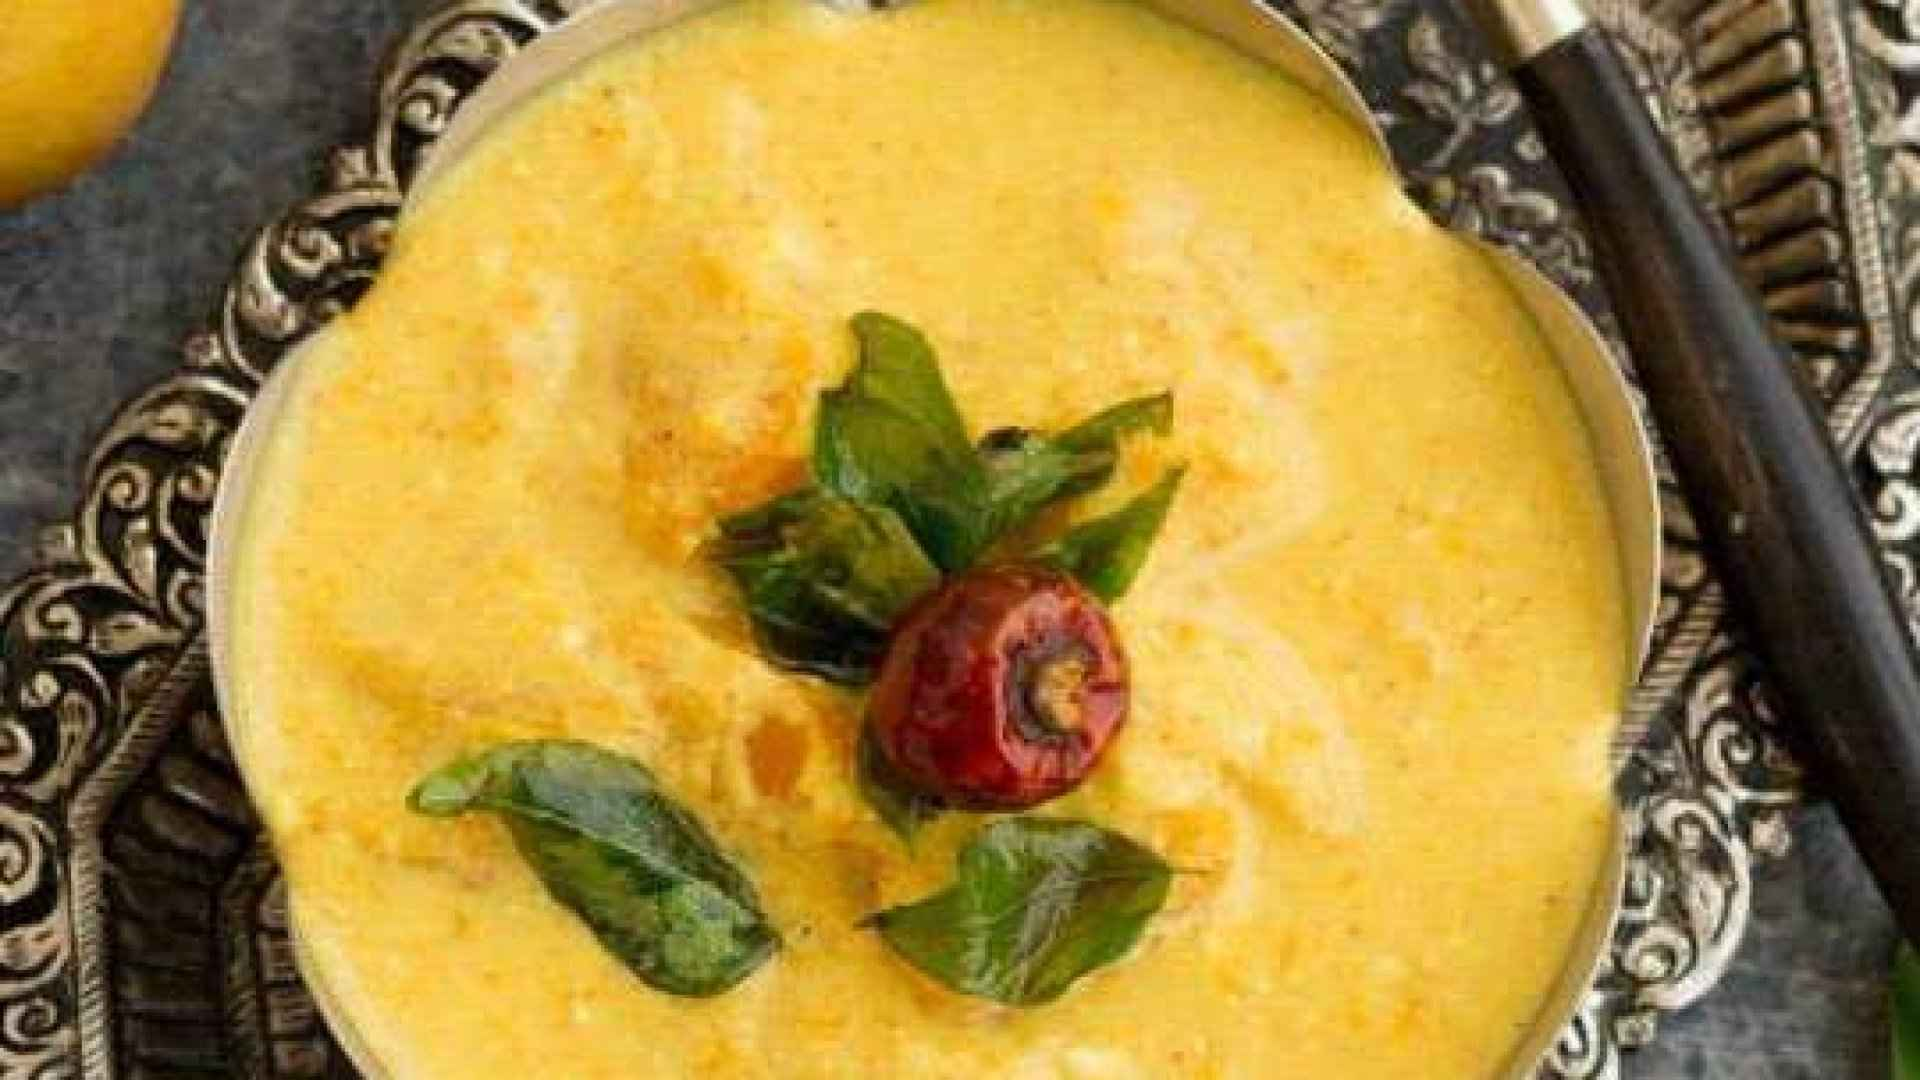 Mambazha Pulissery / Curd based mango curry(sweet & sour)